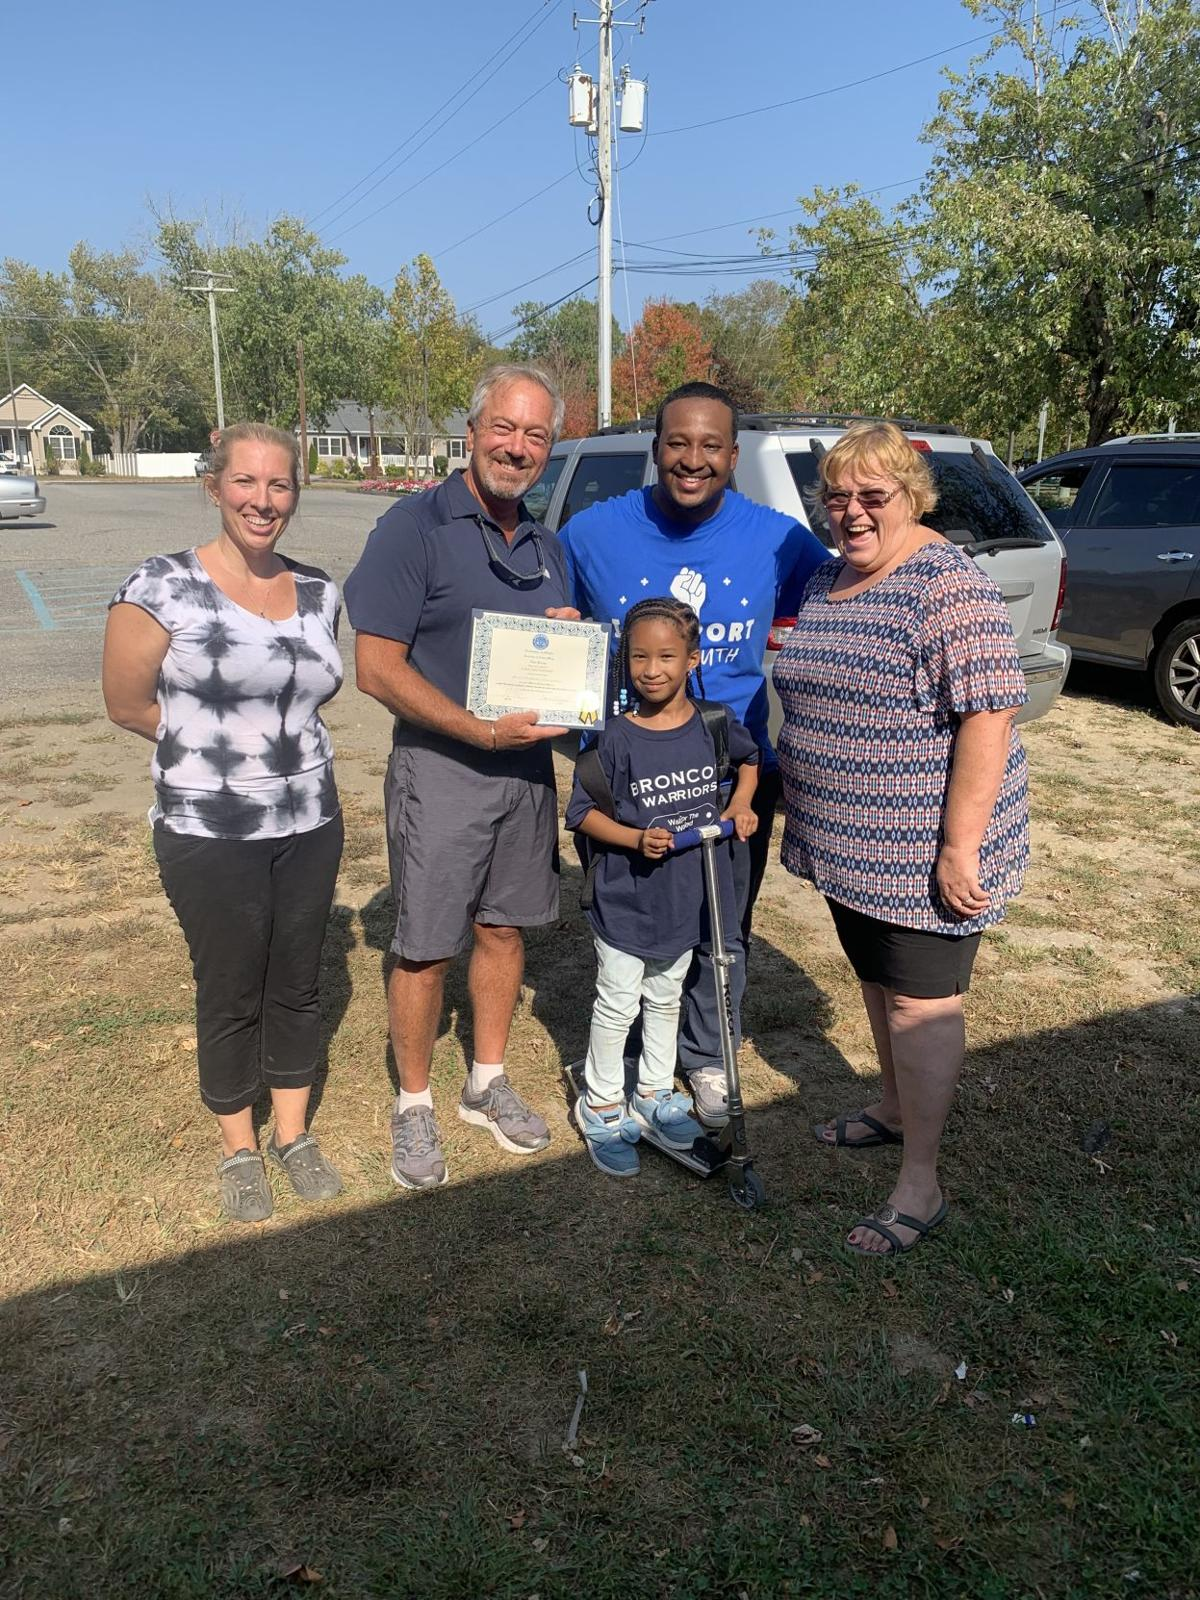 First Million Fathers March in County Held Oct. 5 in Whitesboro